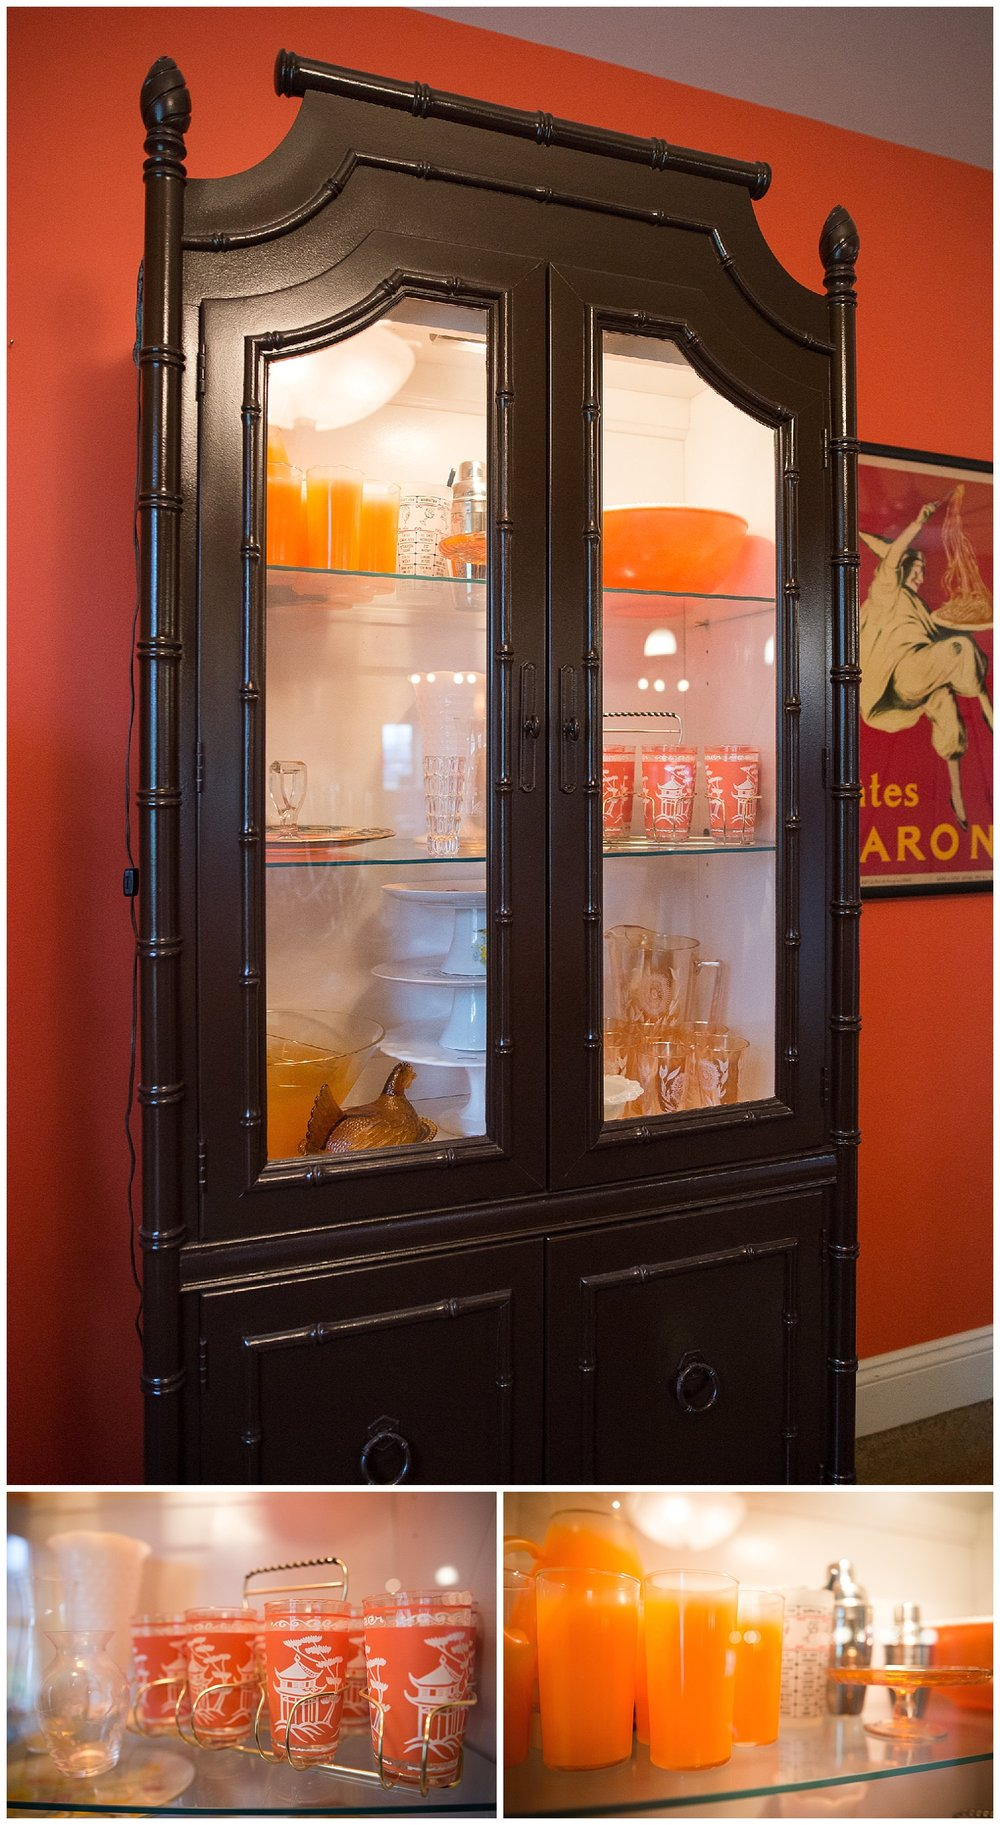 The painted bamboo china cabinet is one of Maria's many fabulous found objects and she's filled its glass shelves with choice vintage serveware pieces in orange, chrome (see those cocktail shakers in the back?), amber glass (cake platter), clear glass and the most beautiful collection of cake stands.   Check out how it all pops thanks to the cabinet's light.